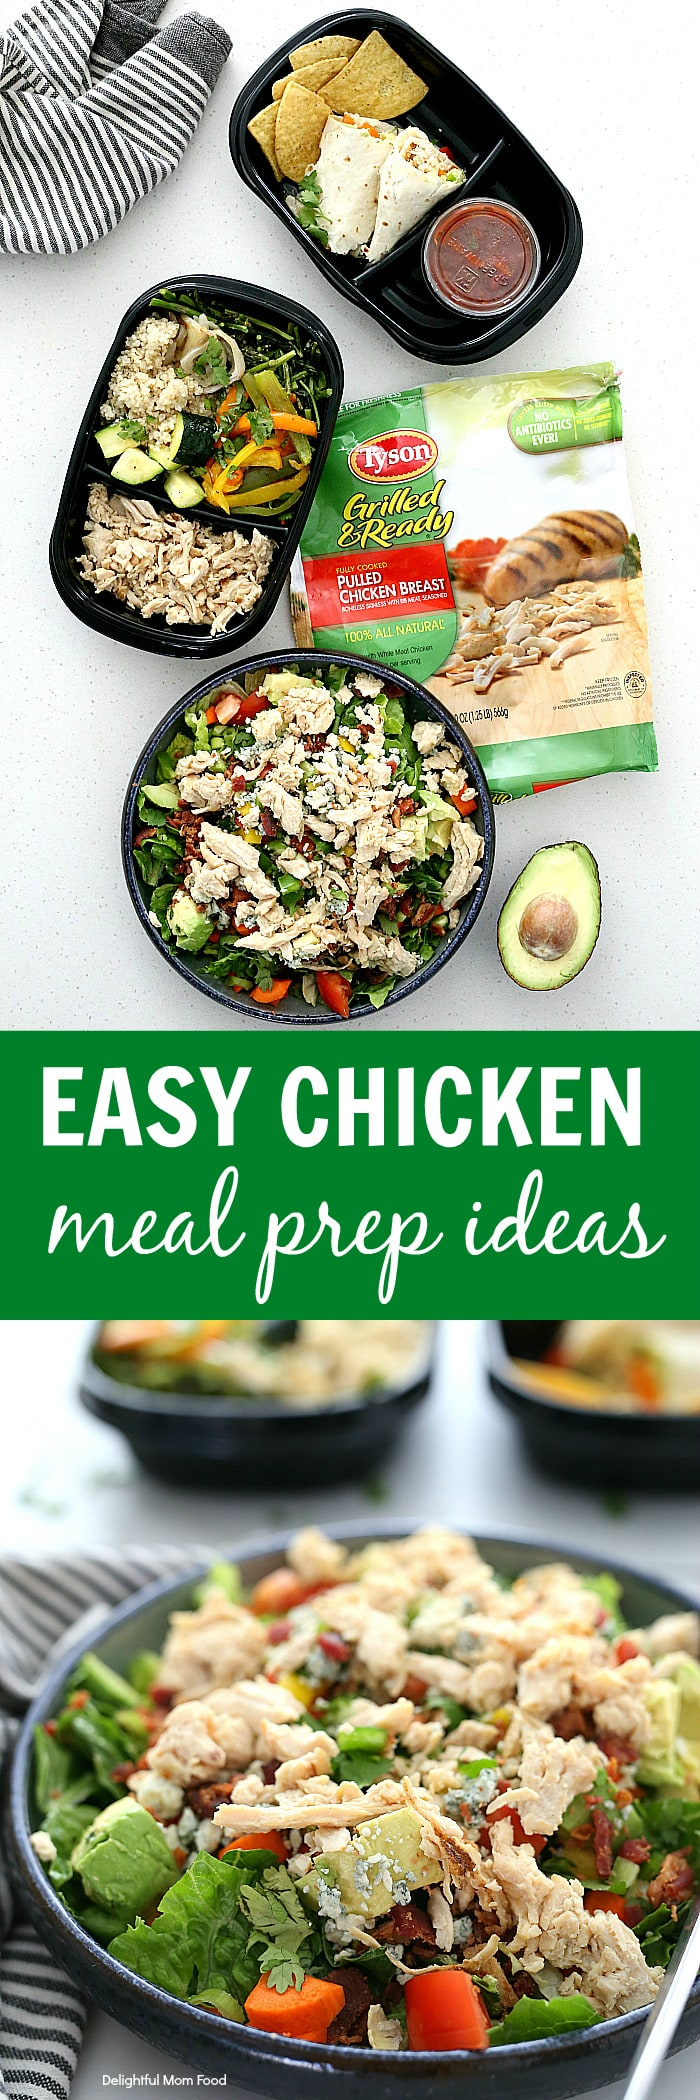 Looking for easy meals for dinner the whole family will enjoy? Conquer meal time with these chicken meal prep ideas using similar ingredients! Pulled chicken breast cobb salad, chicken wrap and chicken quinoa bowls are easy, wholesome and gluten free! #chicken #meal #prep #ideas #recipe #glutenfree #wholesome @tysonsbrand #ad | Recipe at delightfulmomfood.com